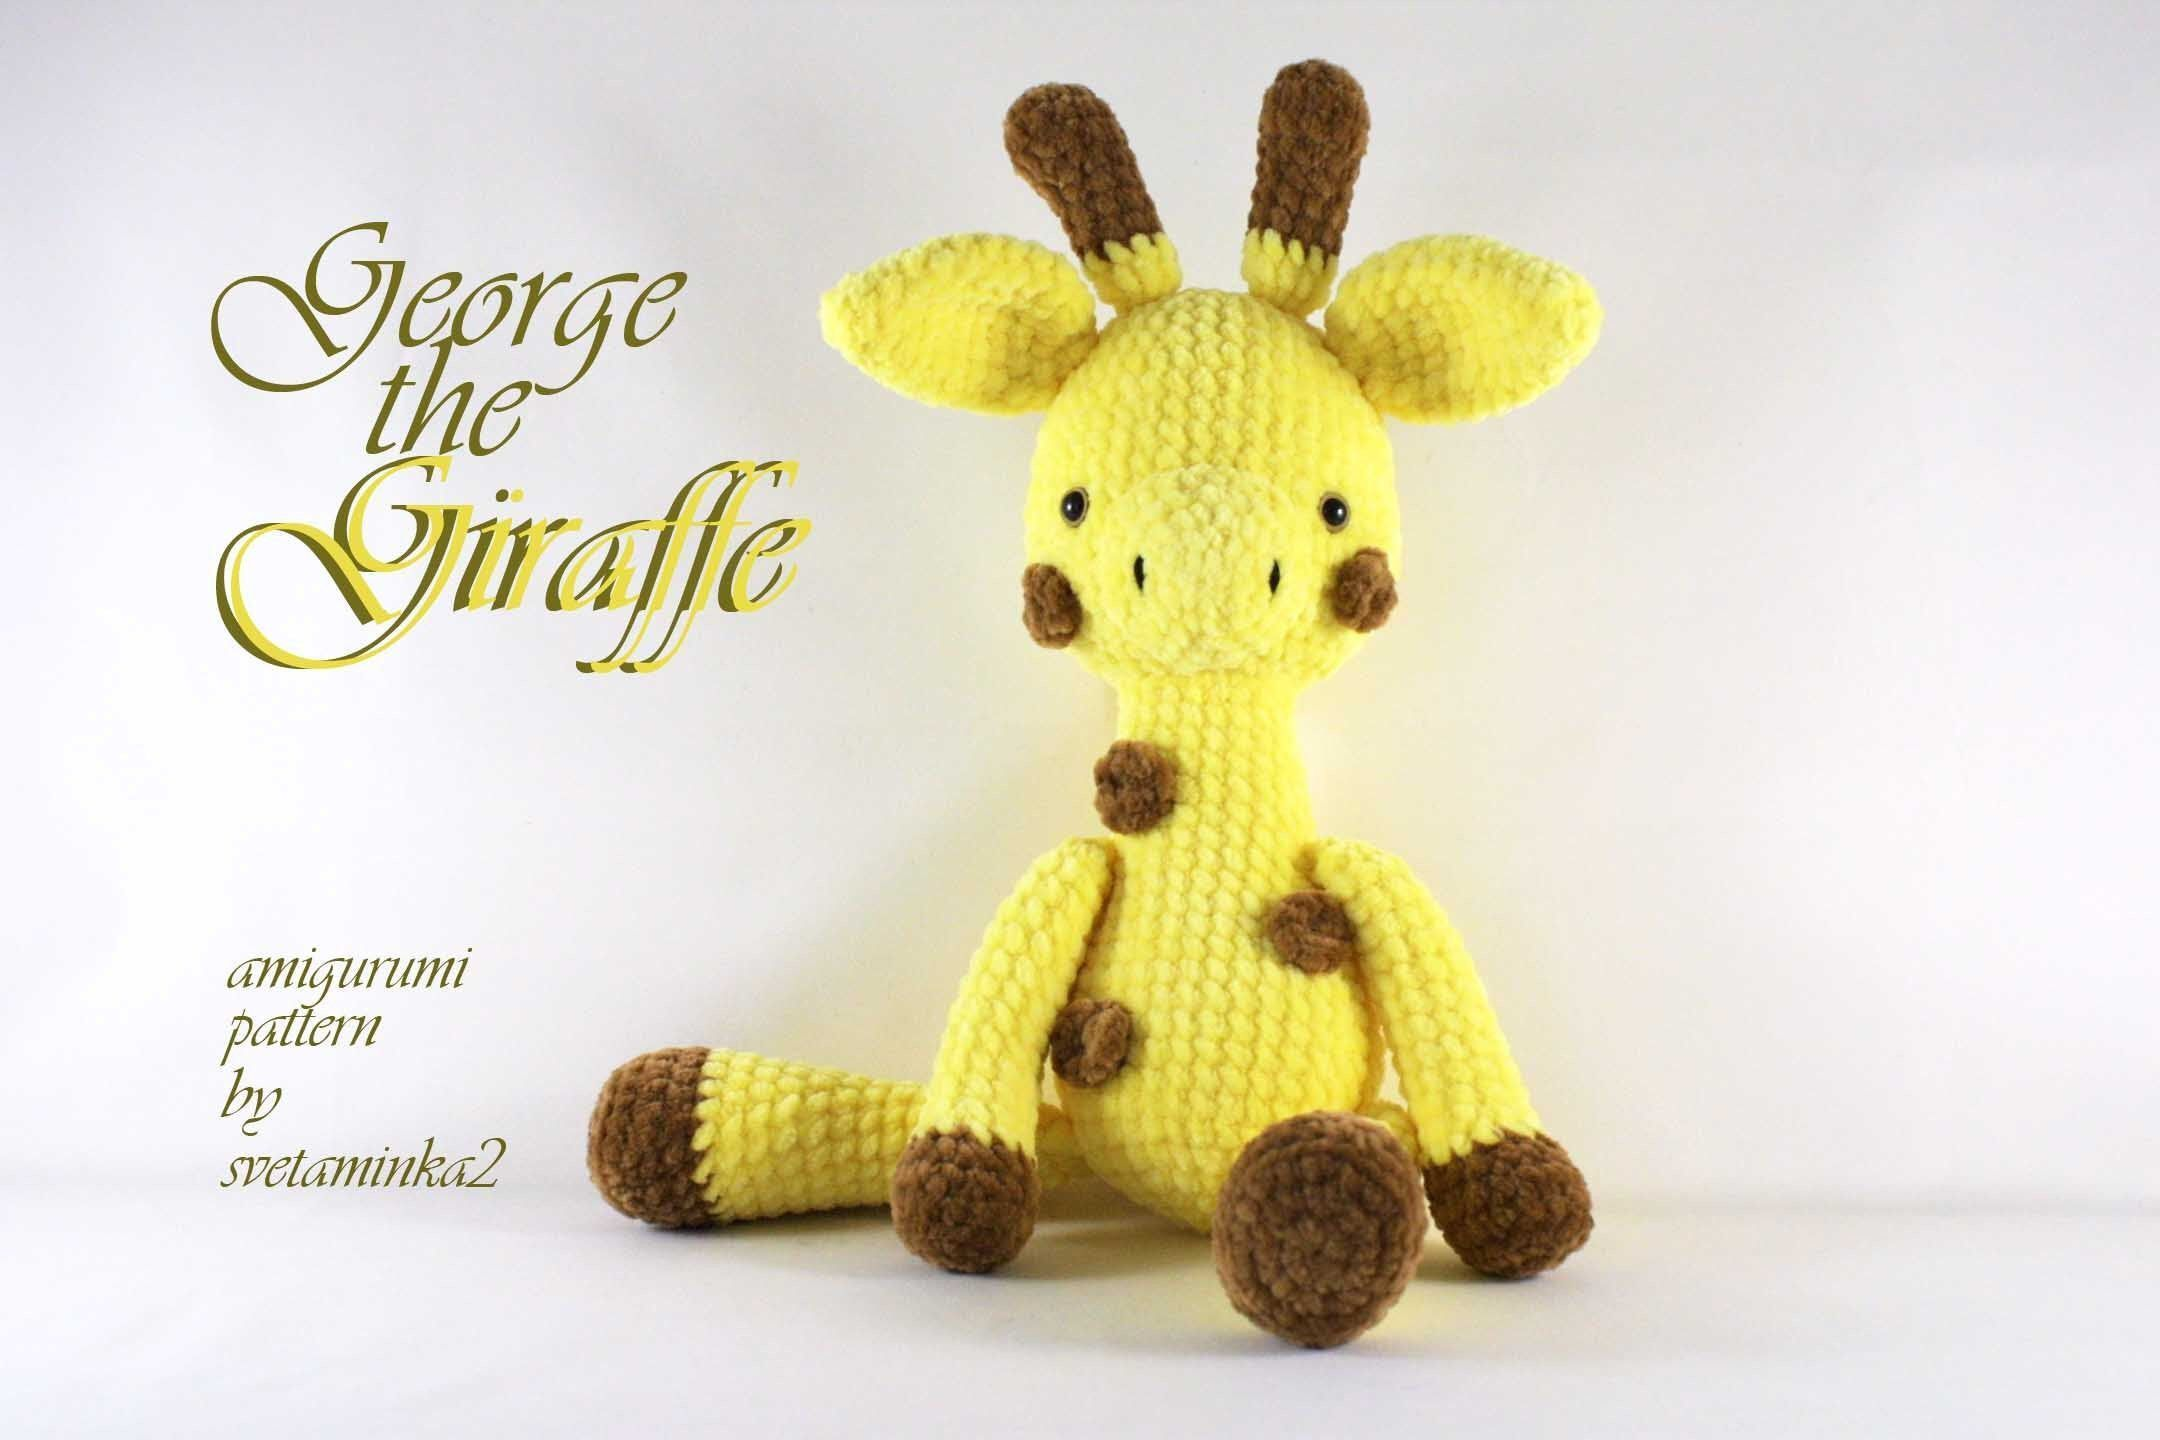 Crochet Giraffe Pattern Amigurumi Pattern Crochet Animal Pattern Plush Toy Pattern Crochet Cute Toy Pattern Amigurumi Giraffe pdf Pattern #giraffepattern Make your own crochet Giraffe with this step-by-step amigurumi crochet pattern with lots of photos. PLEASE NOTE: This is the PDF Crochet Pattern in ENGLISH (US terminology), not the finished toy. The crochet pattern is available for Instant Download. When your payment is cleared you will receive an email with all the information needed to downl #crochetgiraffepattern